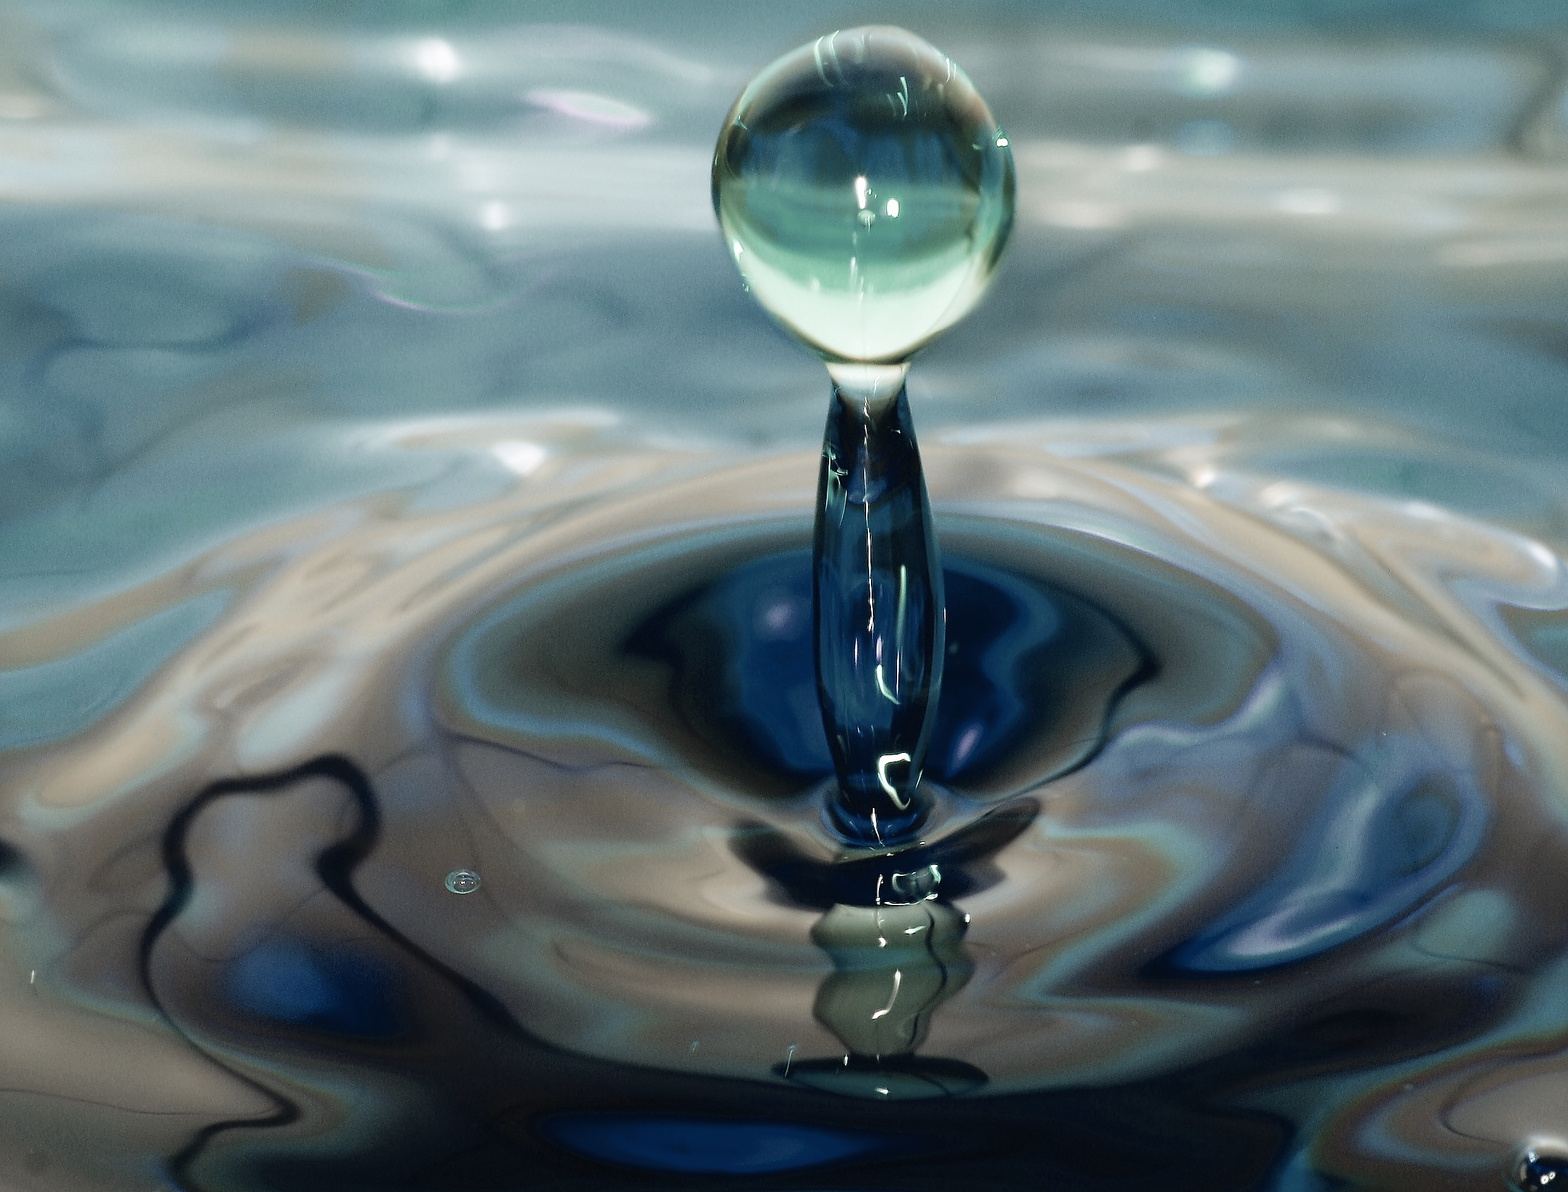 A stop motion image of water after something has been dropped on the surface.